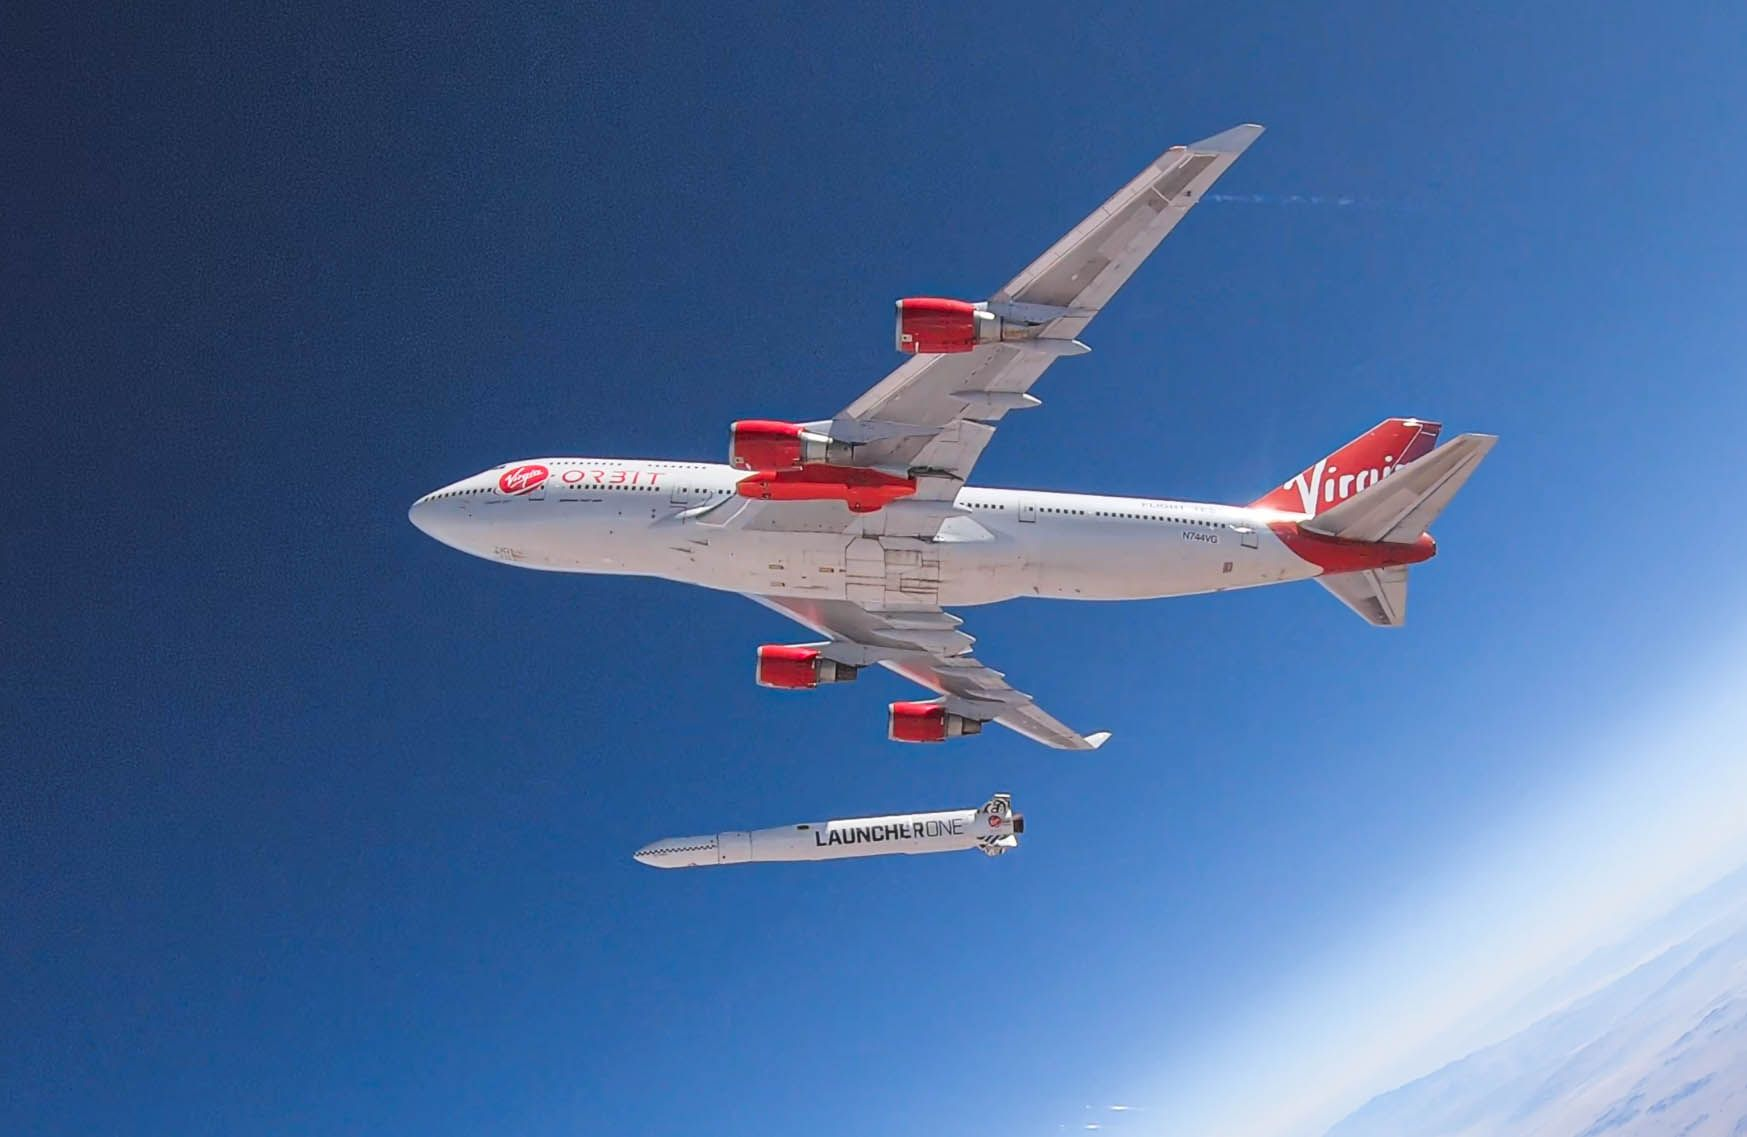 - JS212530286 - Kernow Sat 1 will be first satellite launched into space by Virgin Orbit from Cornwall